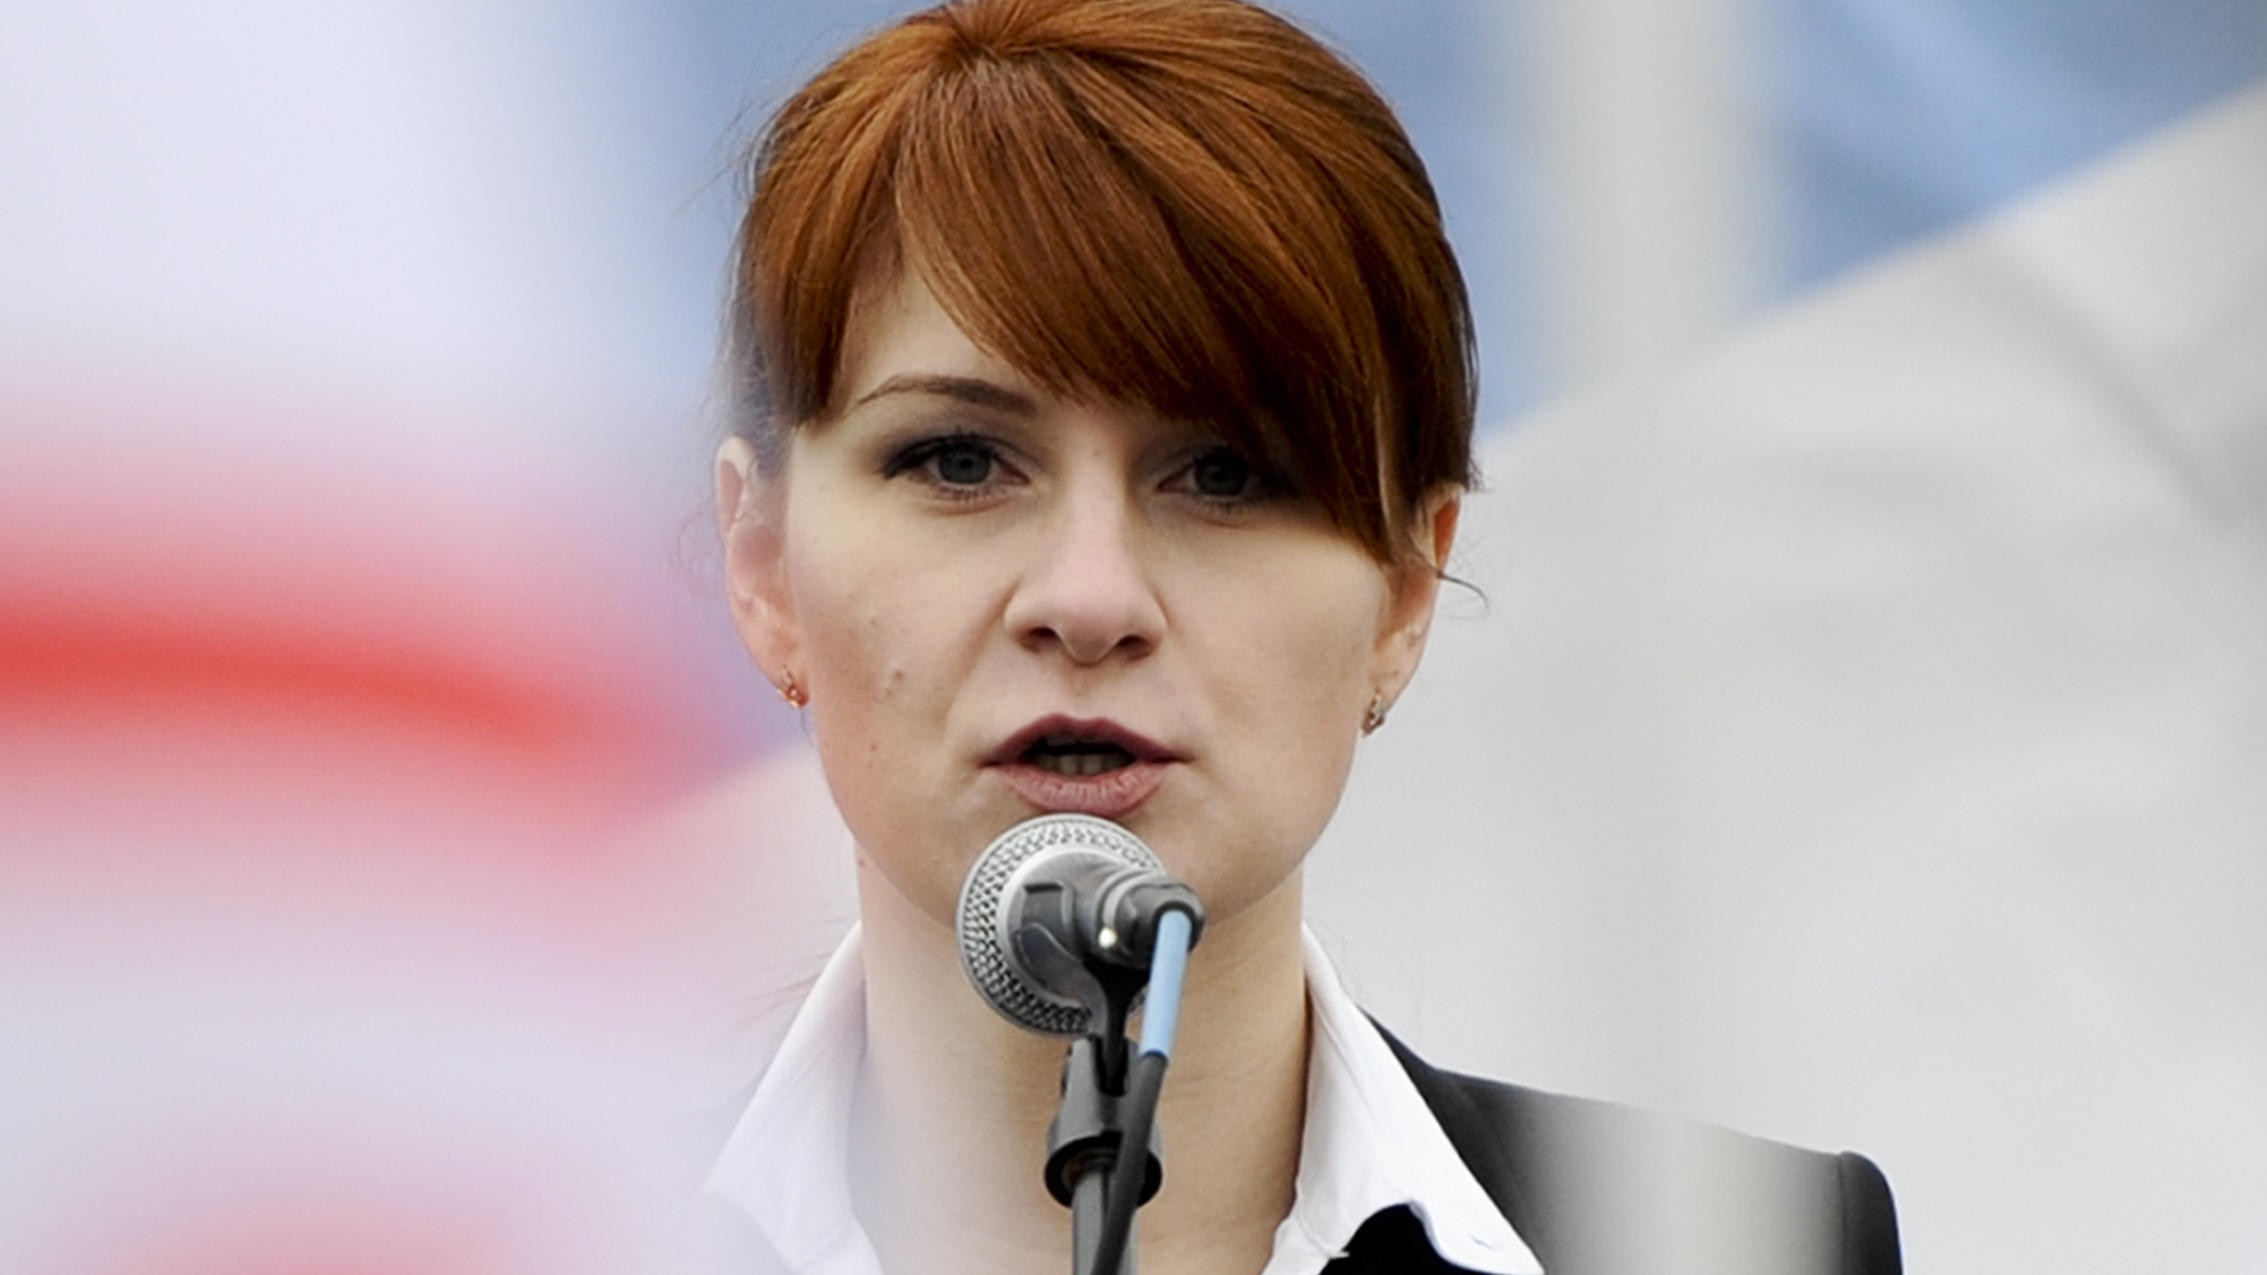 Prosecutors Said On Wednesday That The Fbi Has Information That Maria Butina Has Been In Contact With Russias Fsb Spy Agency For As Long As She Has Been In